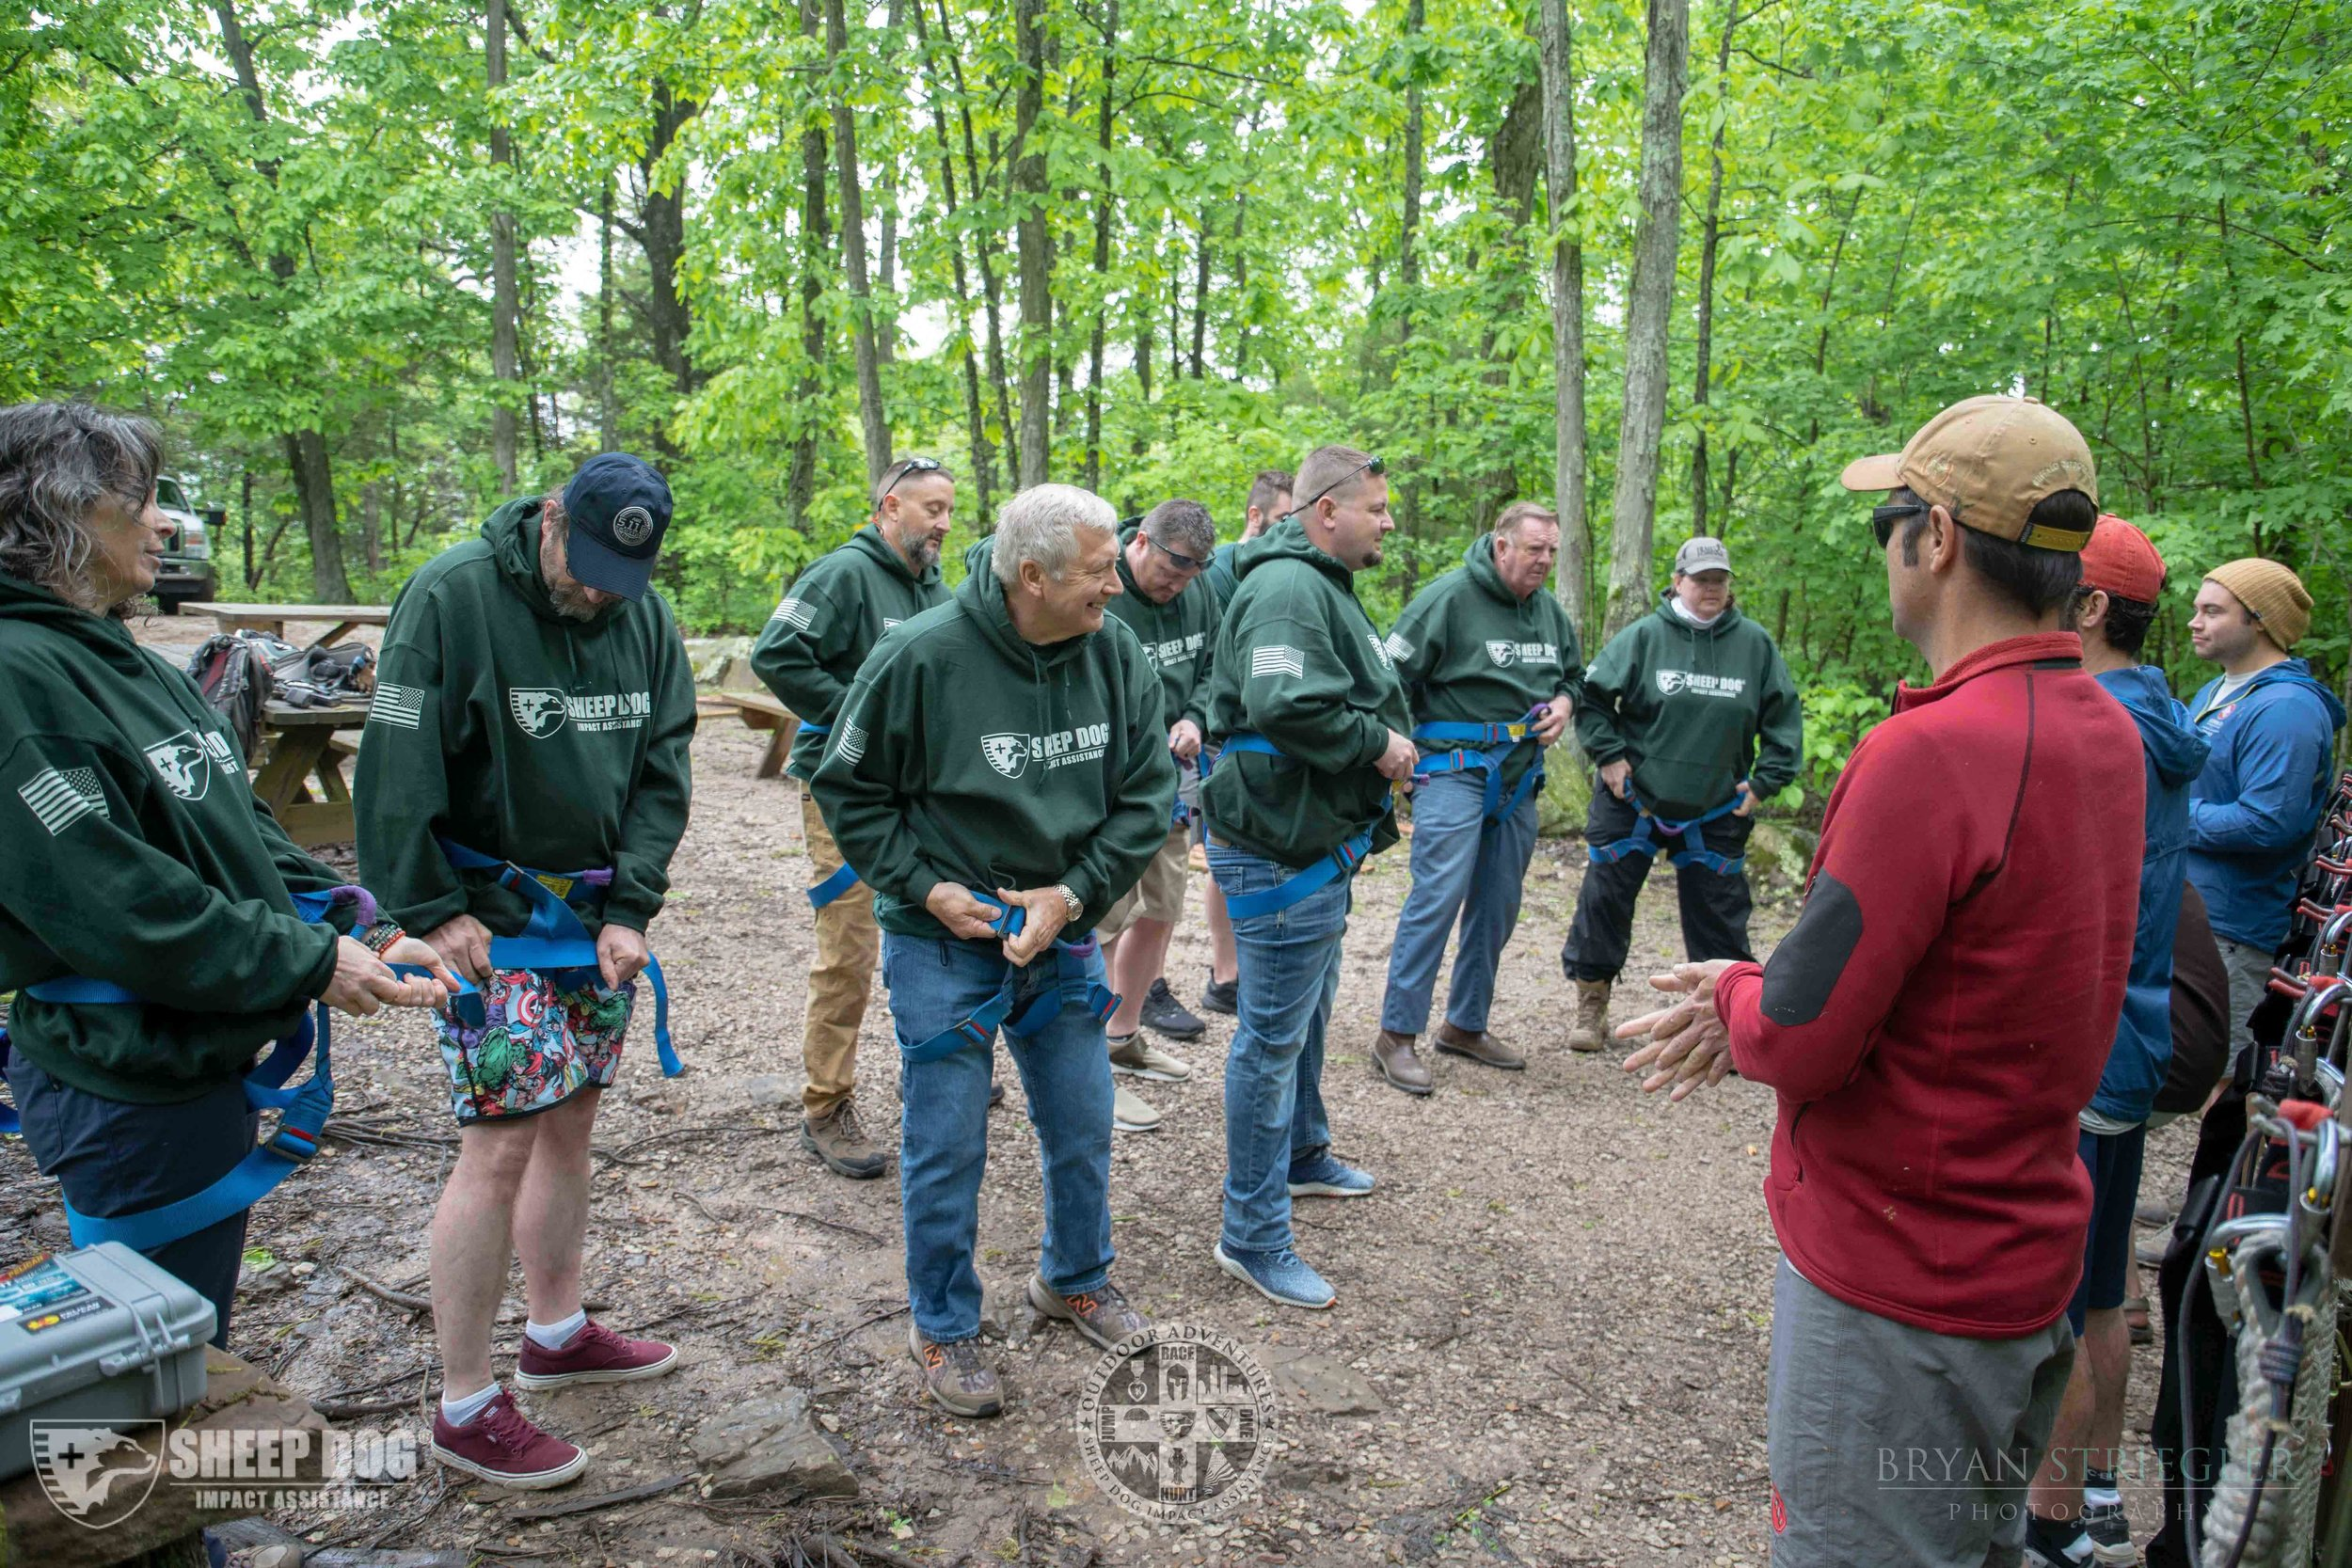 Sheep Dog group gears up for a forest adventure. The group holds 24 adventure events annually. - Photos courtesy of Sheep Dog Impact Assistance